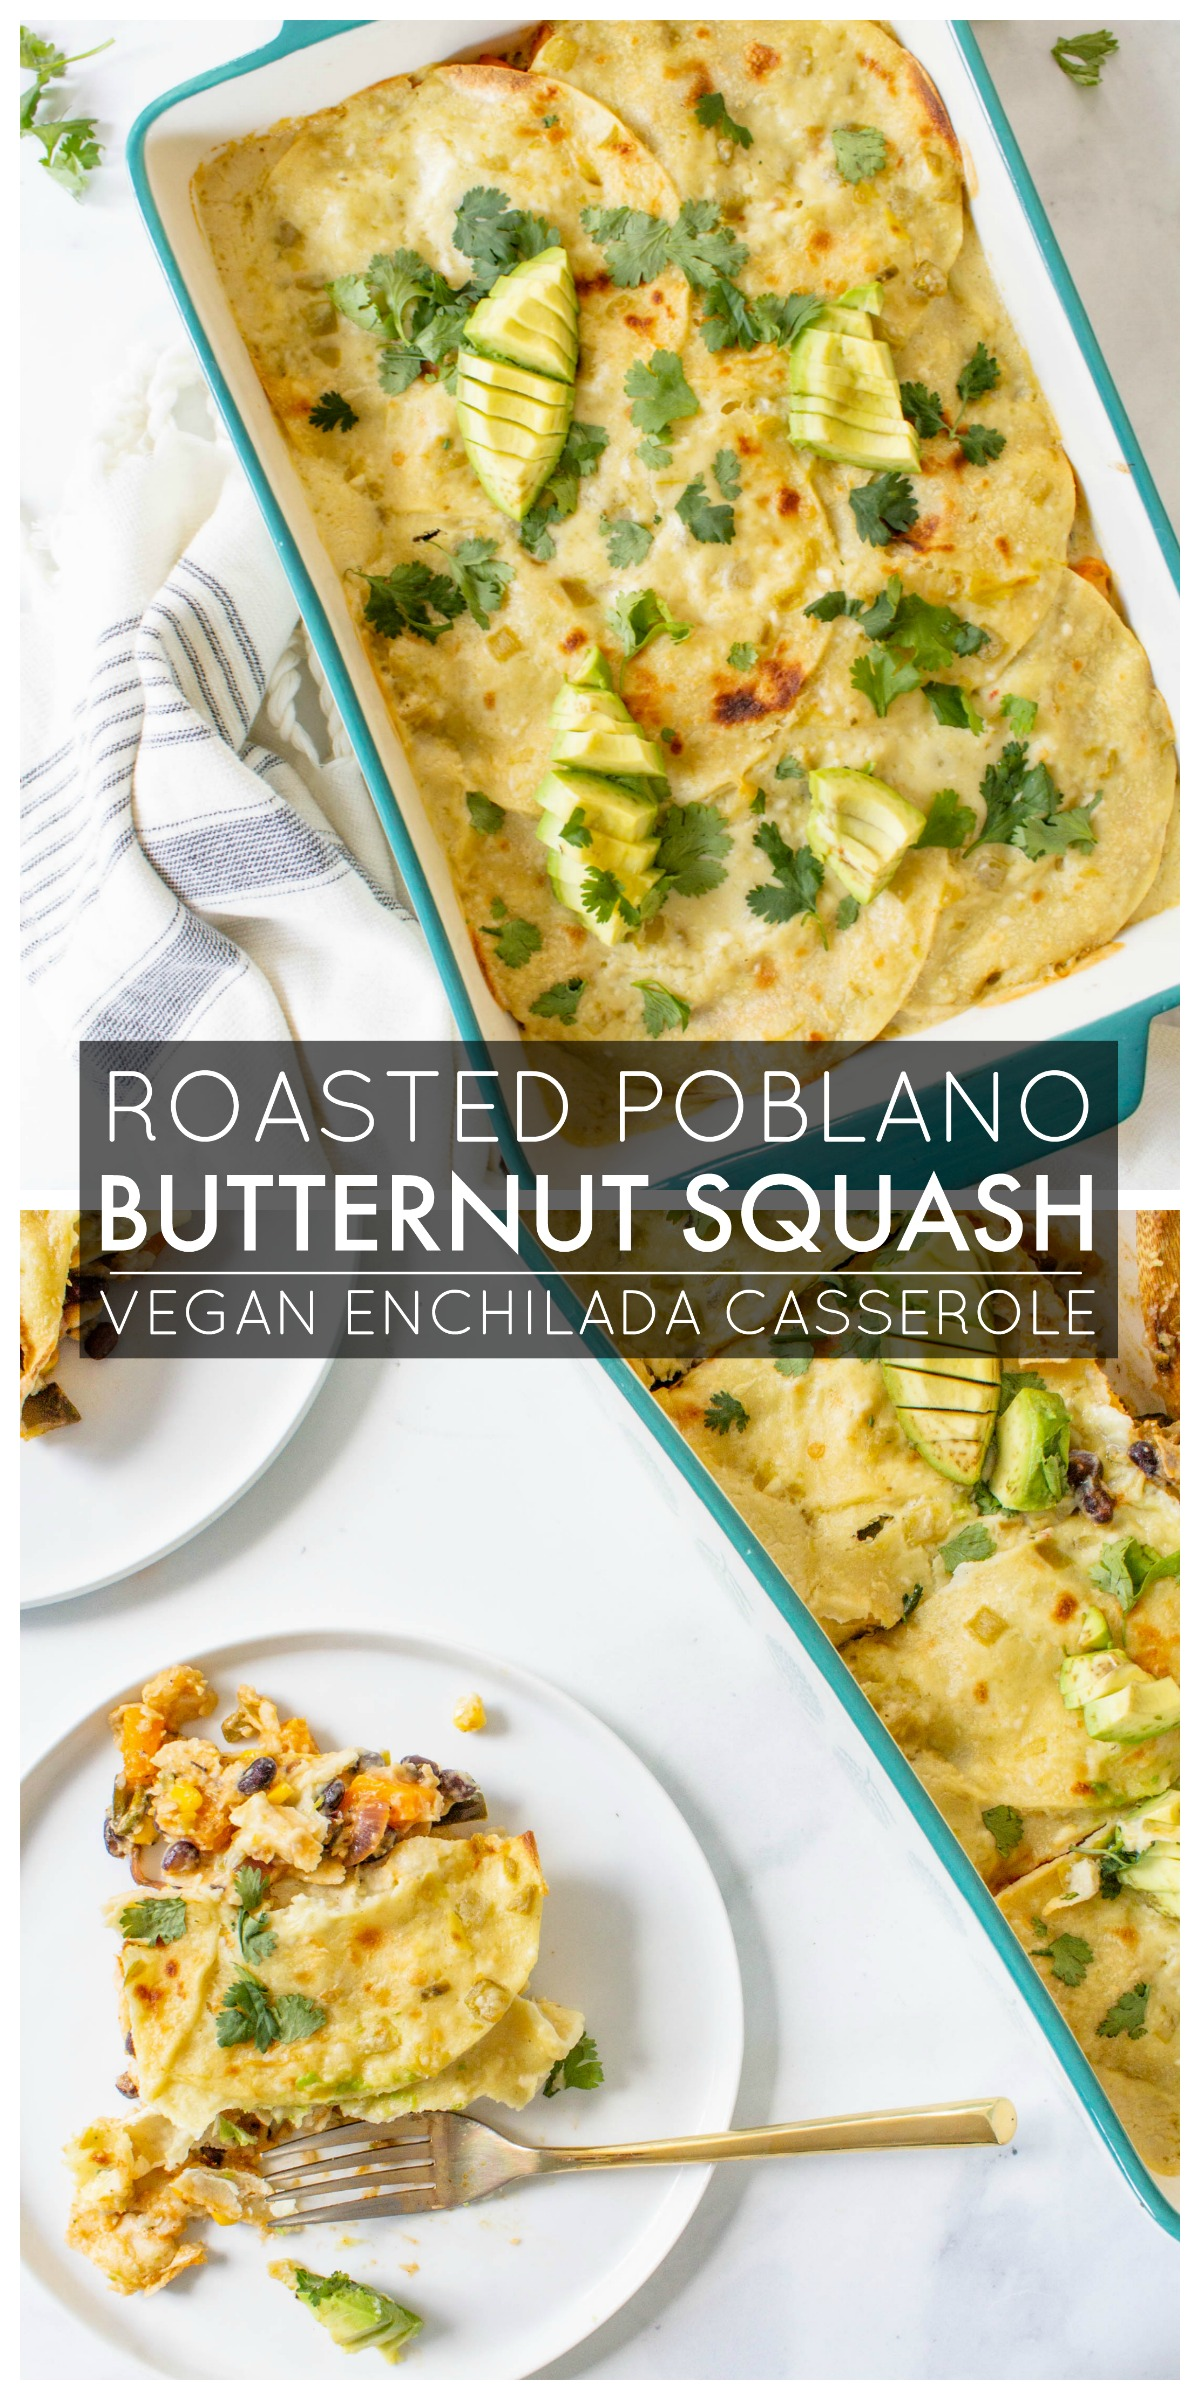 This Vegan Butternut Squash Poblano Enchilada Casserole is creamy, savory and filled with black beans and roasted veggies. Perfect weeknight dinner   ThisSavoryVegan.com #thissavoryvegan #veganenchiladas